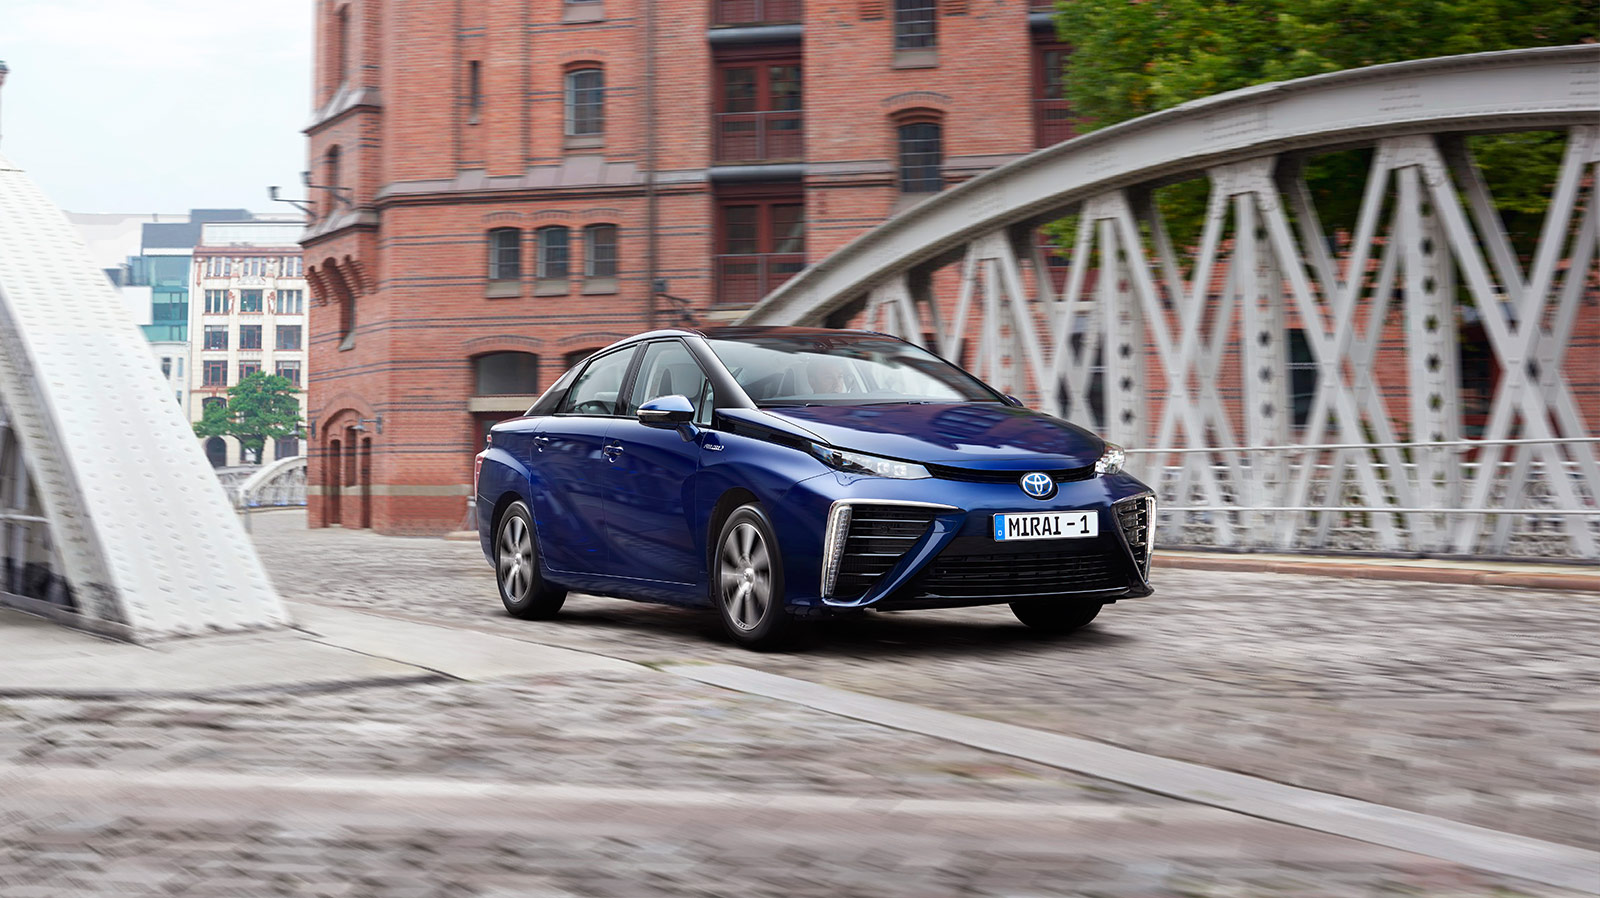 Mirai, Fuel Cell, driving, Germany, bridge